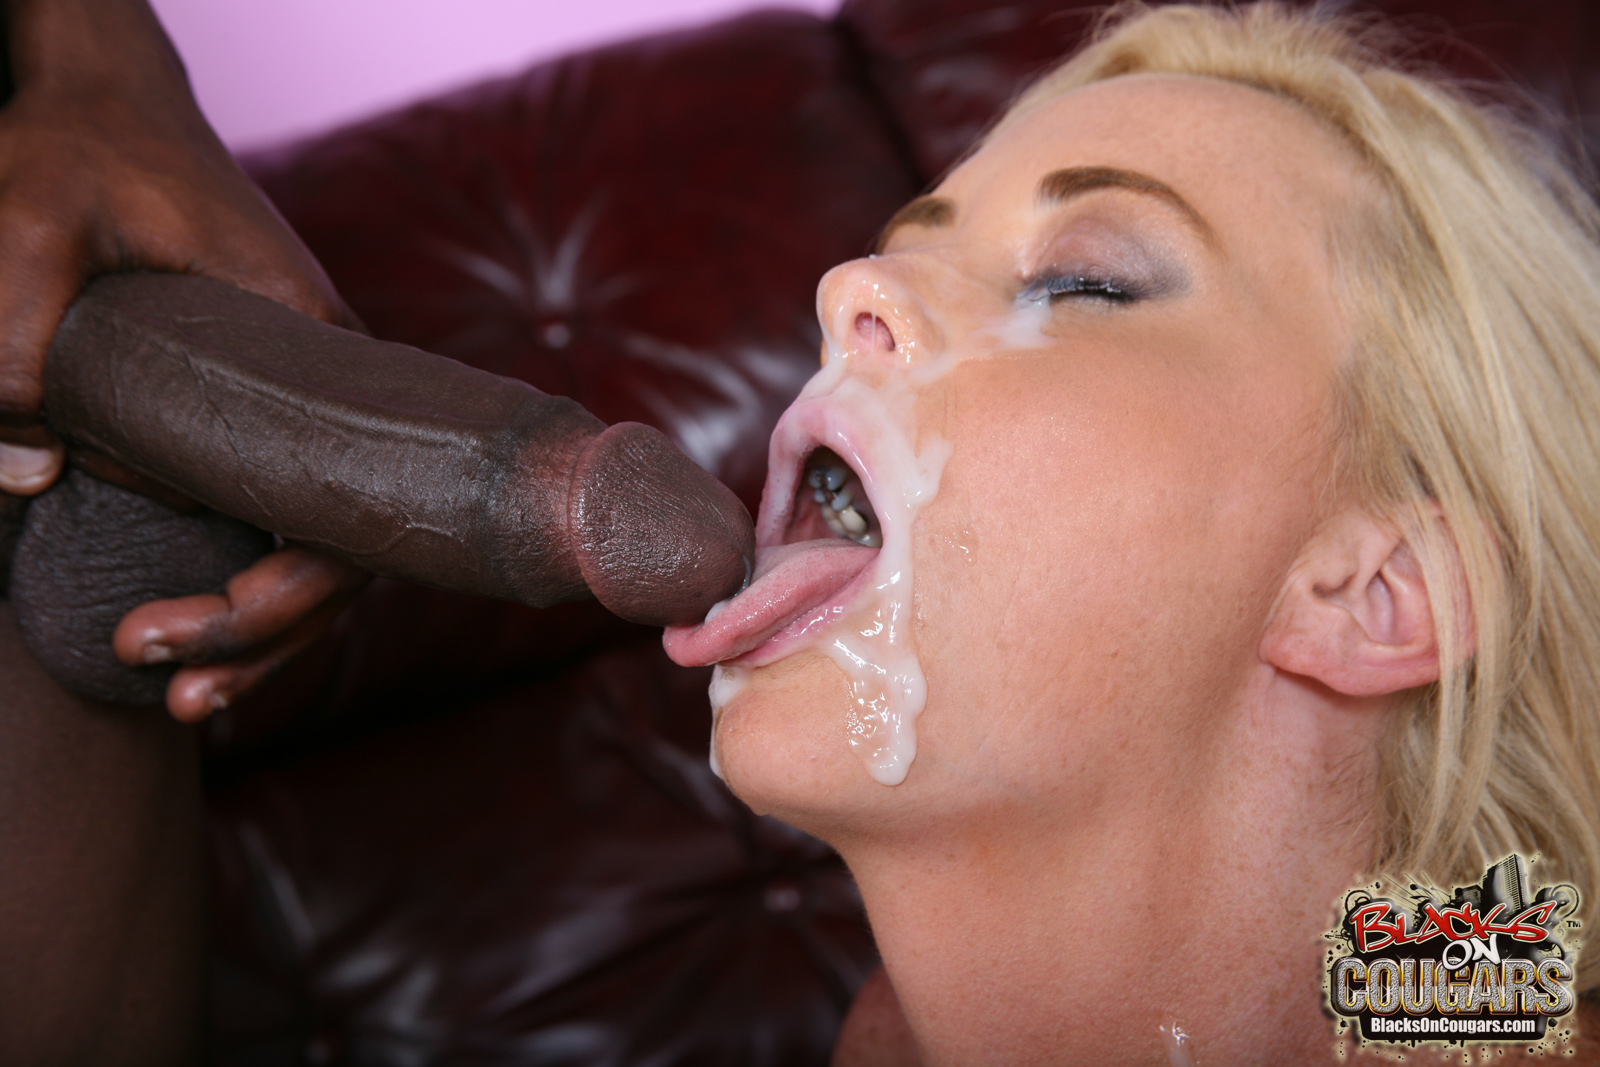 free porn samples of blacks on cougars - monster black cocks fuck milfs